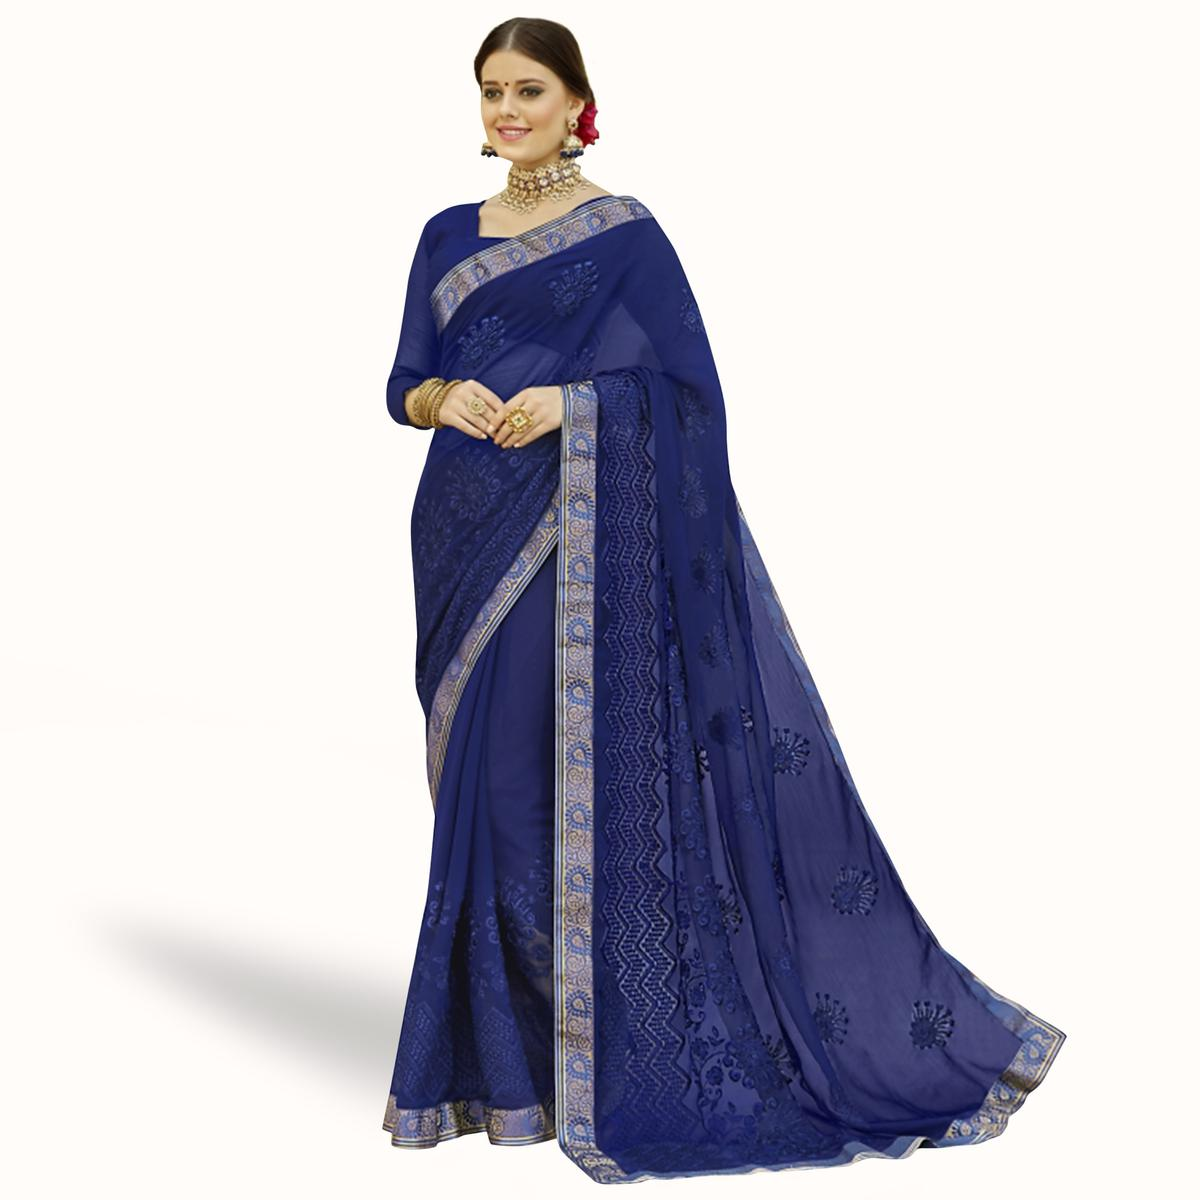 Engrossing Blue Colored Partywear Embroidered Chiffon Saree